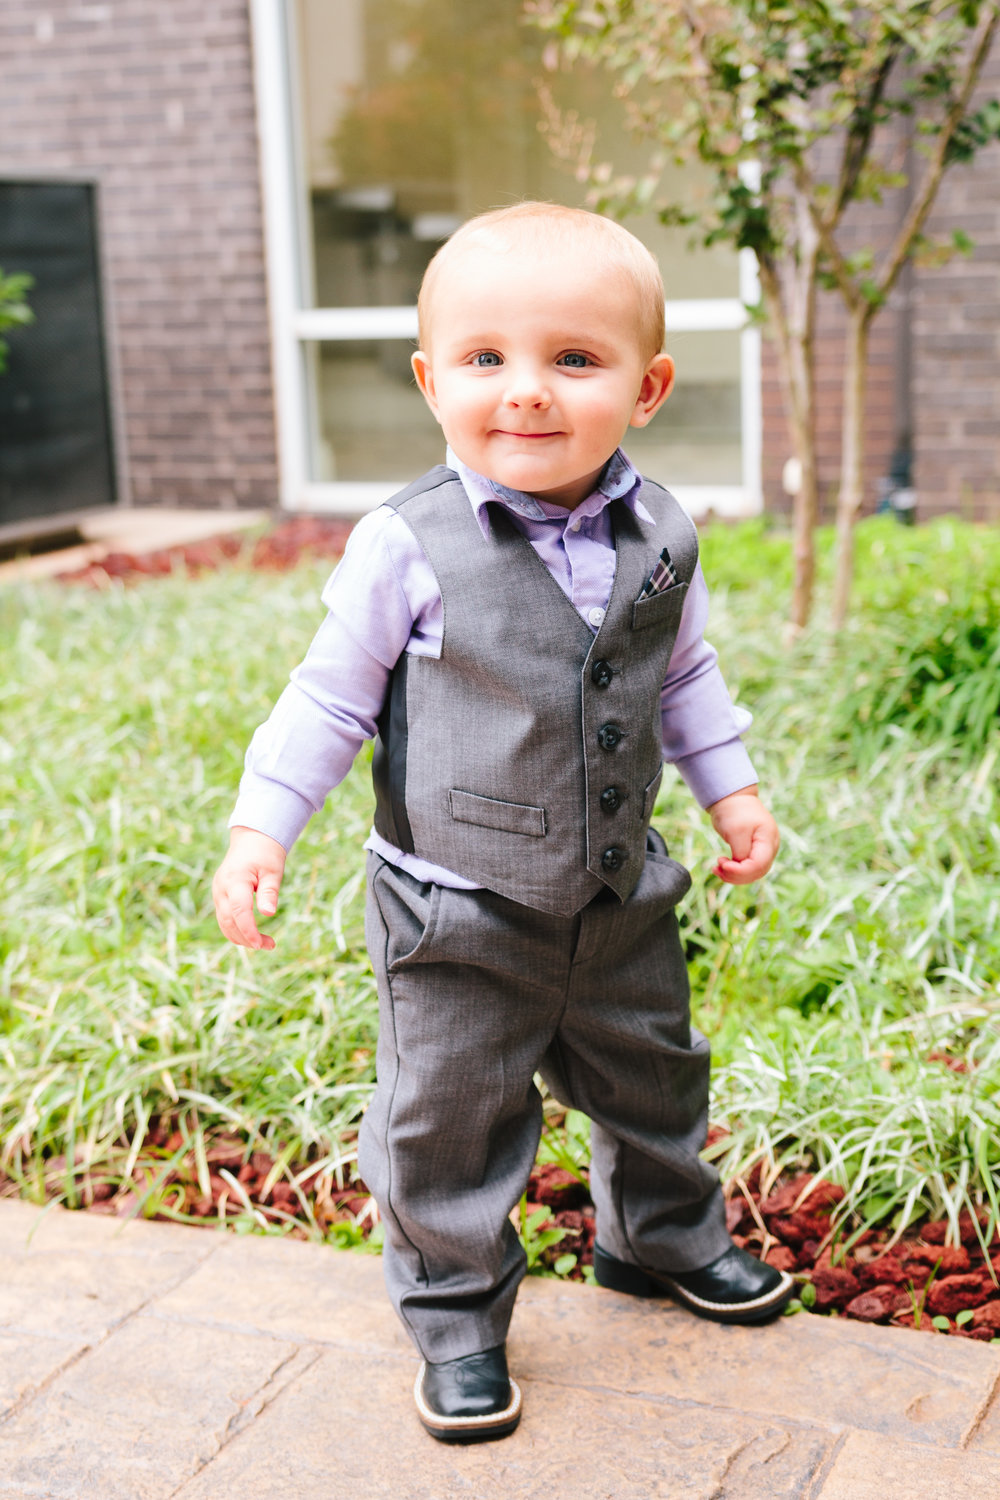 Ring Bearer Attire - A Simple Purple + White Wedding by From Britt's Eye View